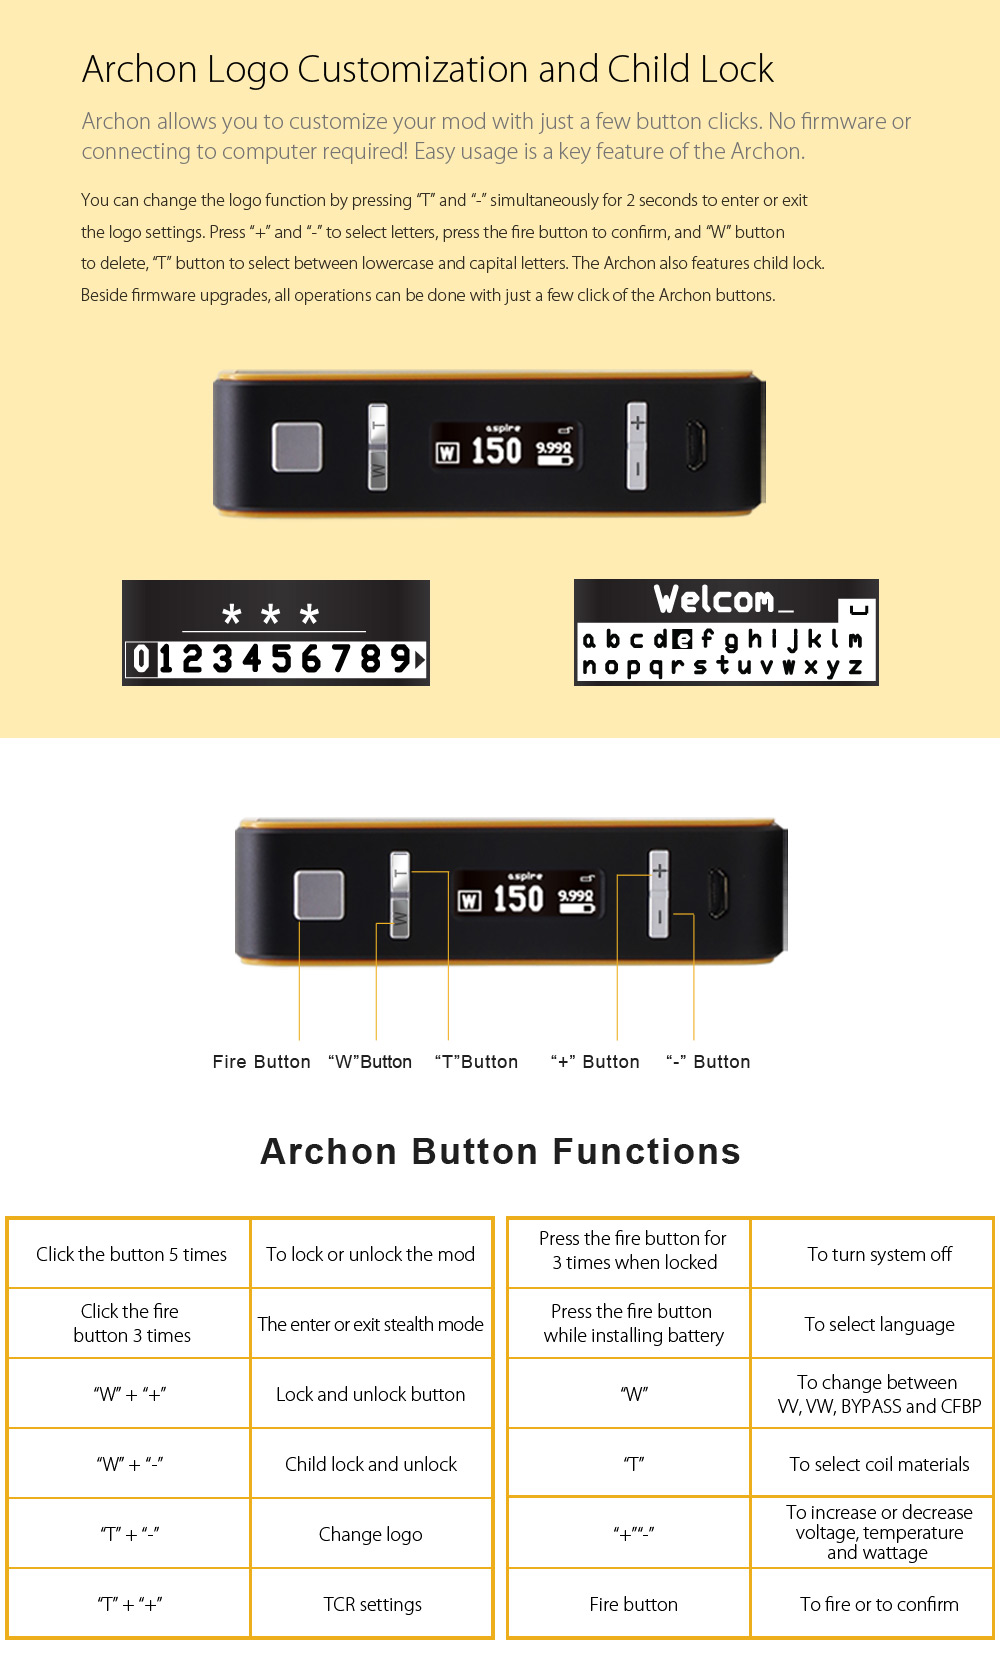 Original Aspire Archon TC Mod with 1 - 150W / 100 - 300C / 200 - 600F / Customizable Firing Button Profiles for E Cigarette